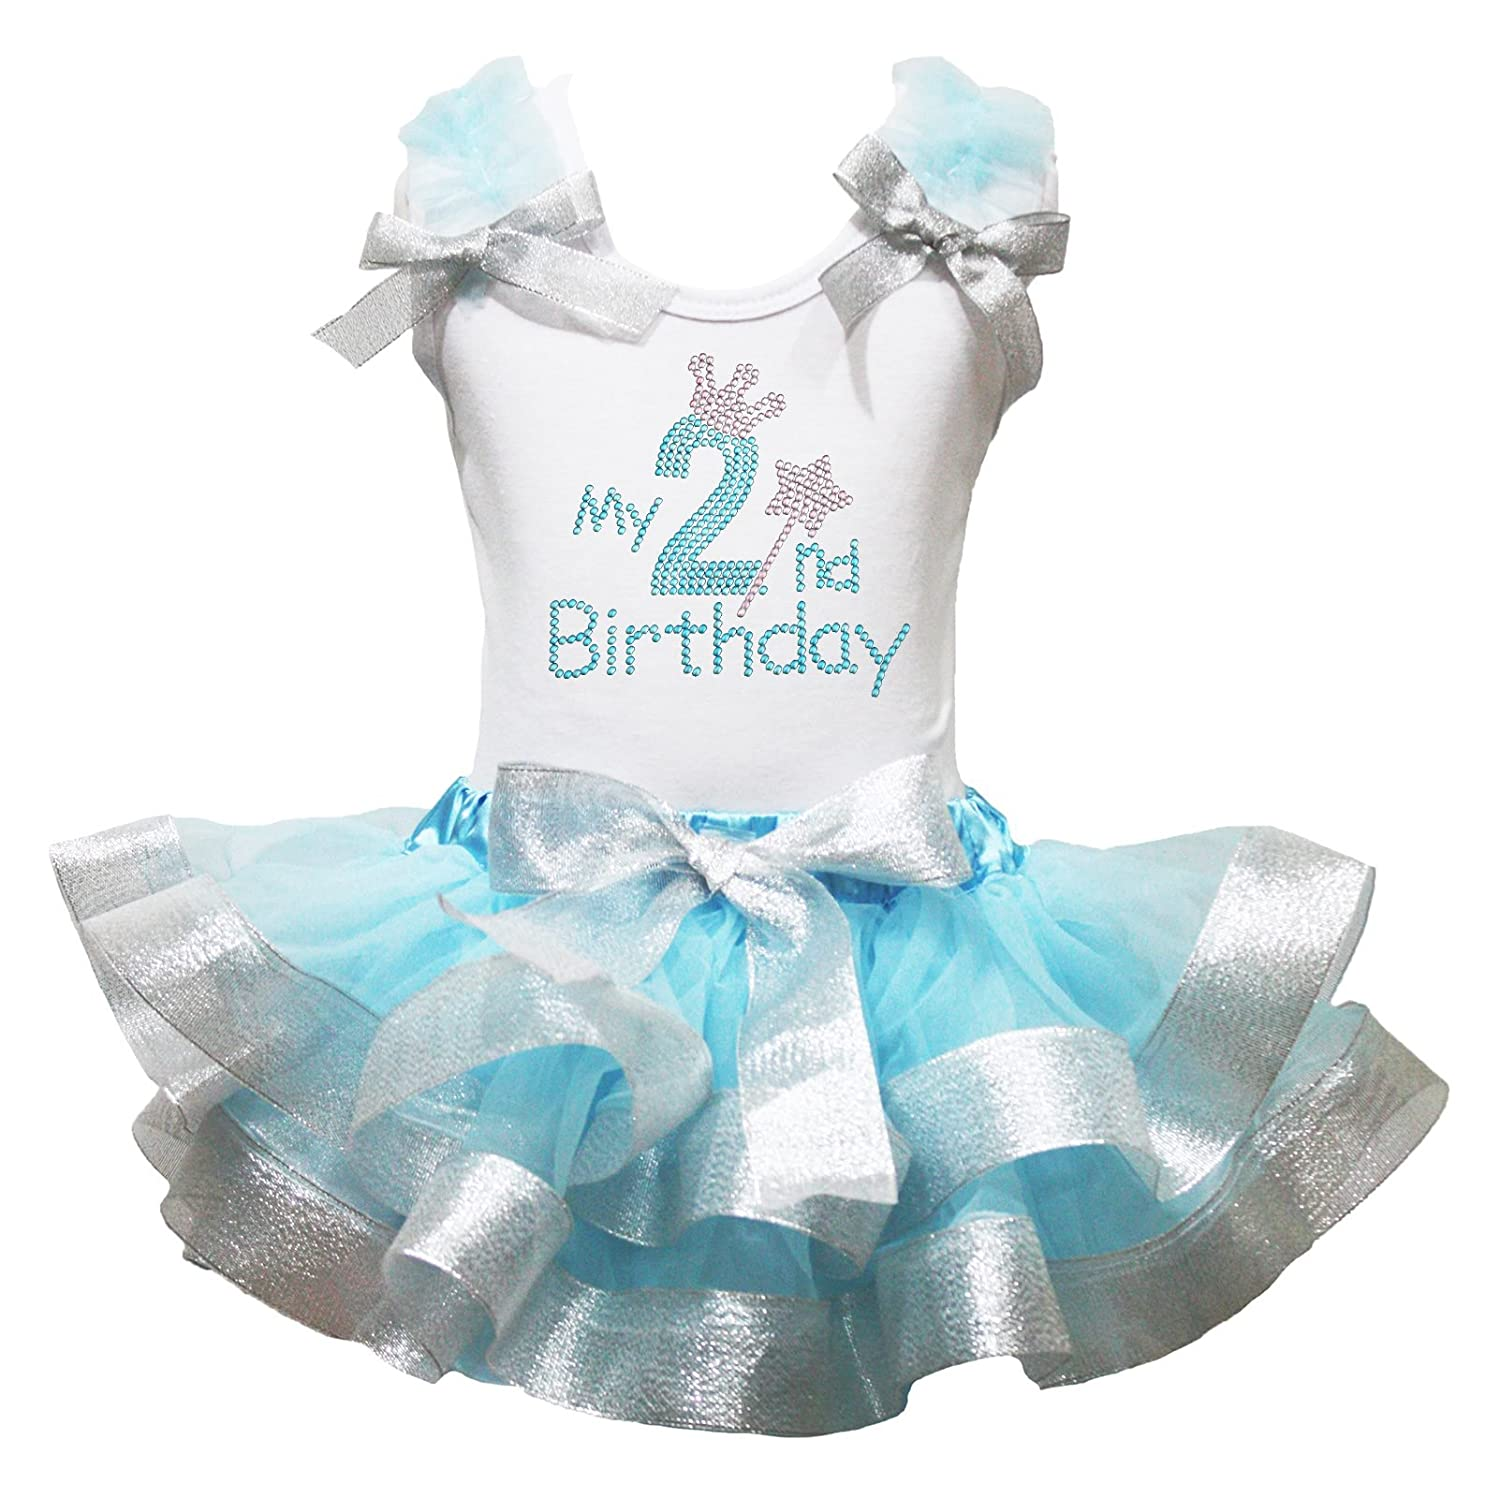 Petitebella My 2nd Birthday Shirt Light Blue Sliver Petal Skirt Outfit Set Nb-8y PO1439